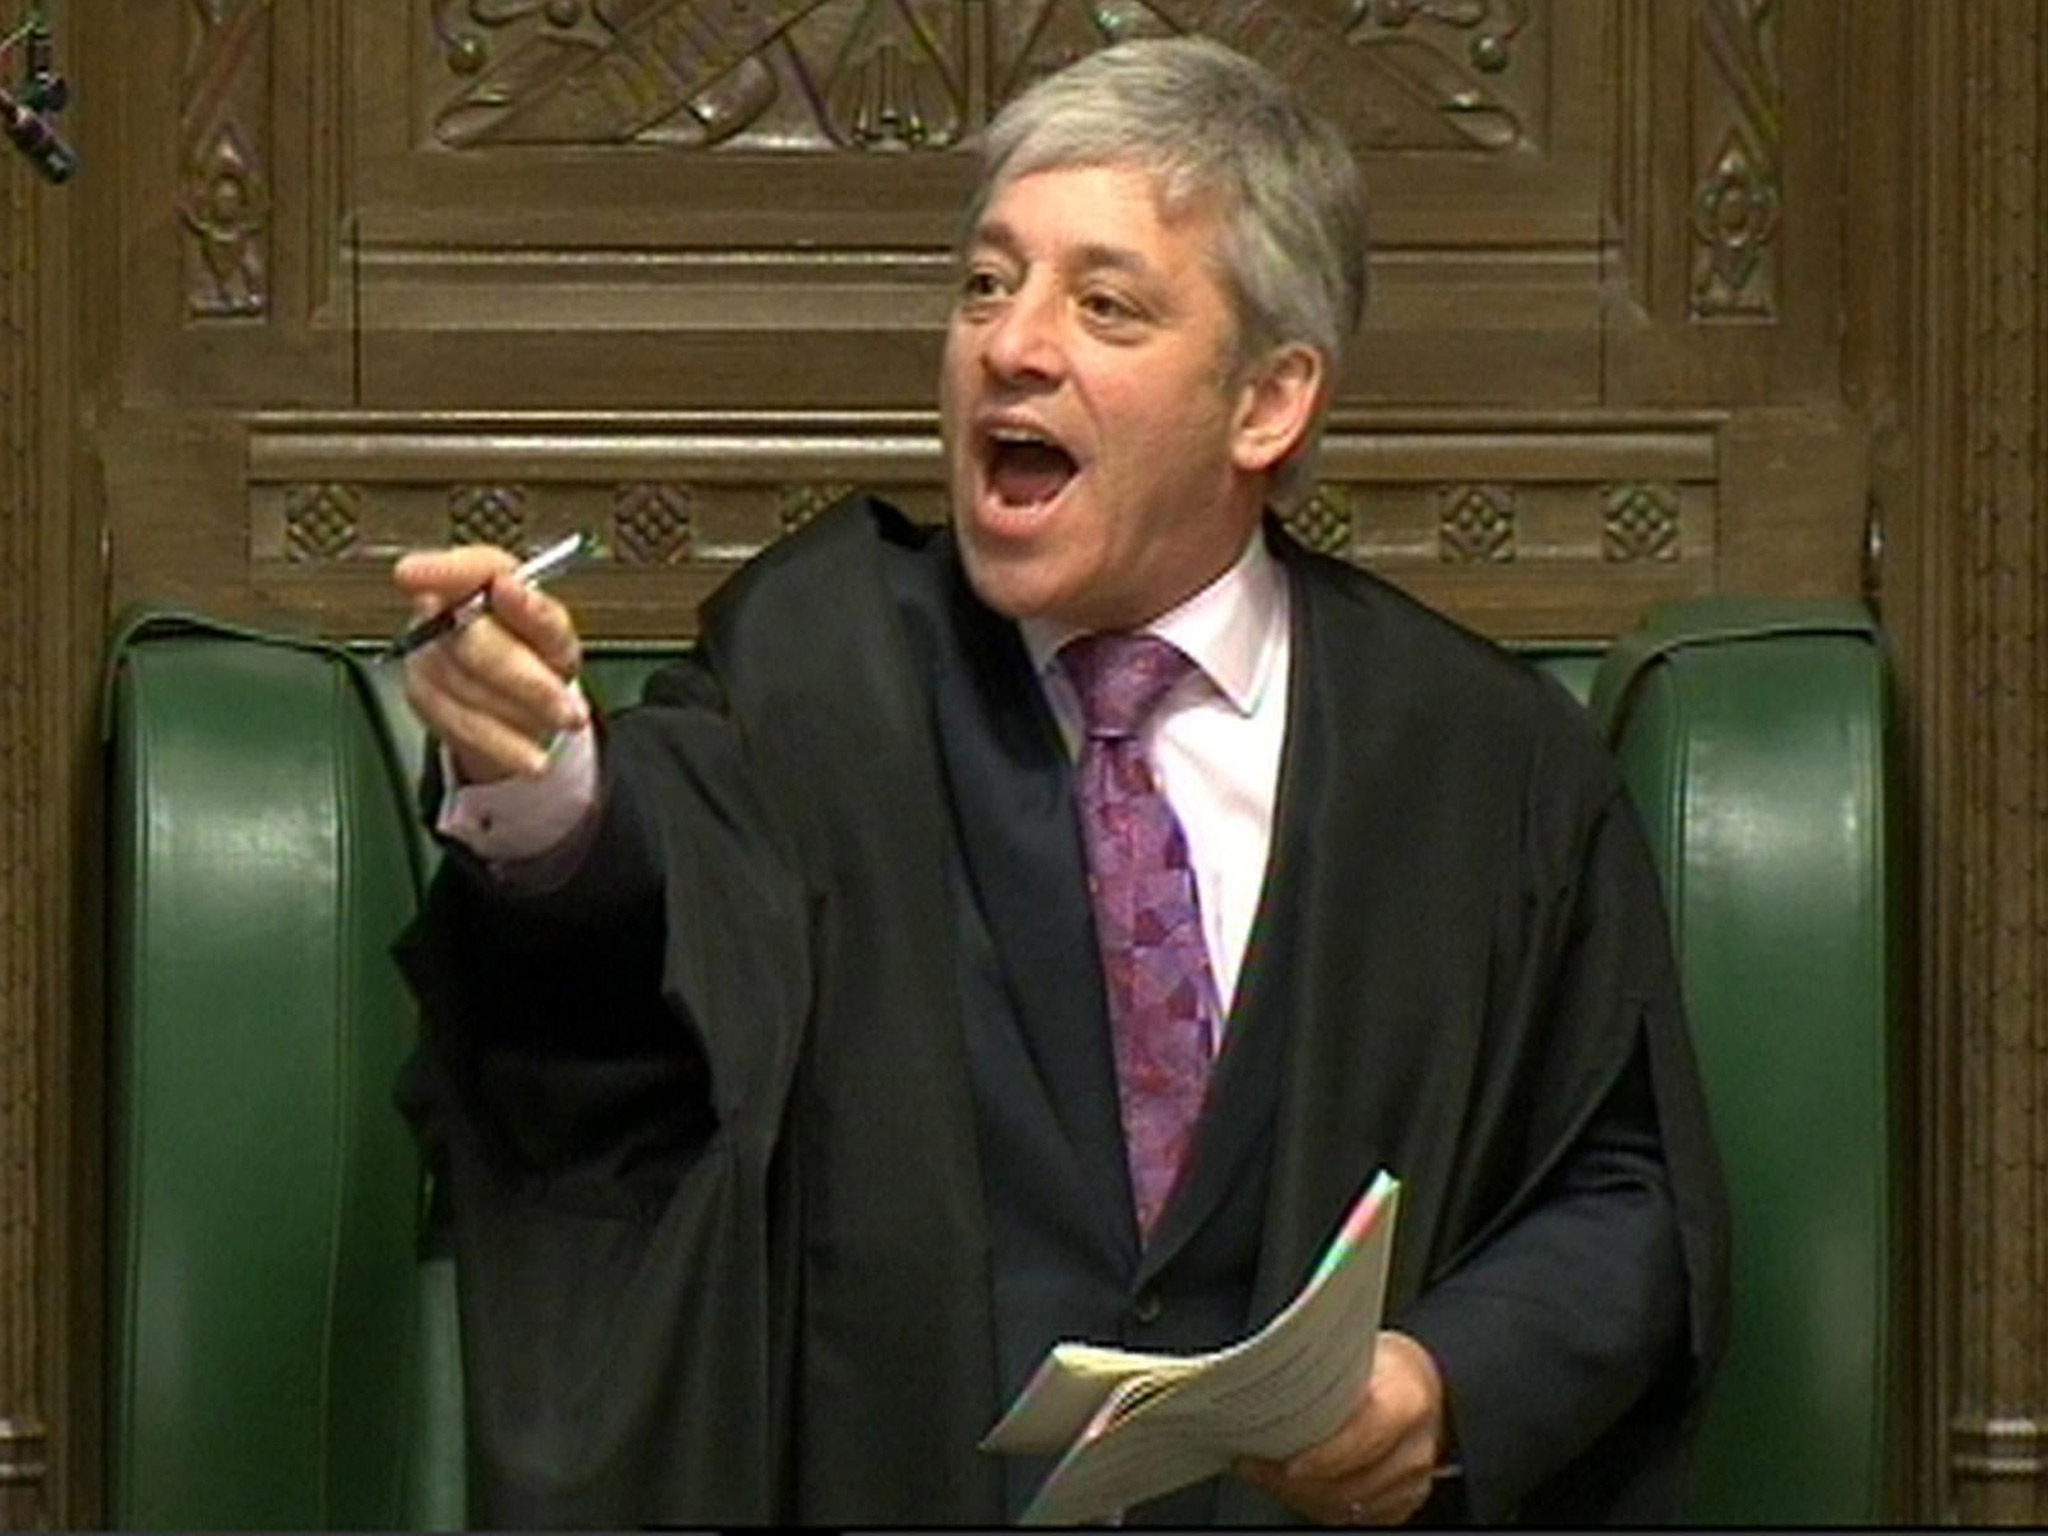 House of Parliament speaker John Bercow addresses to issues.